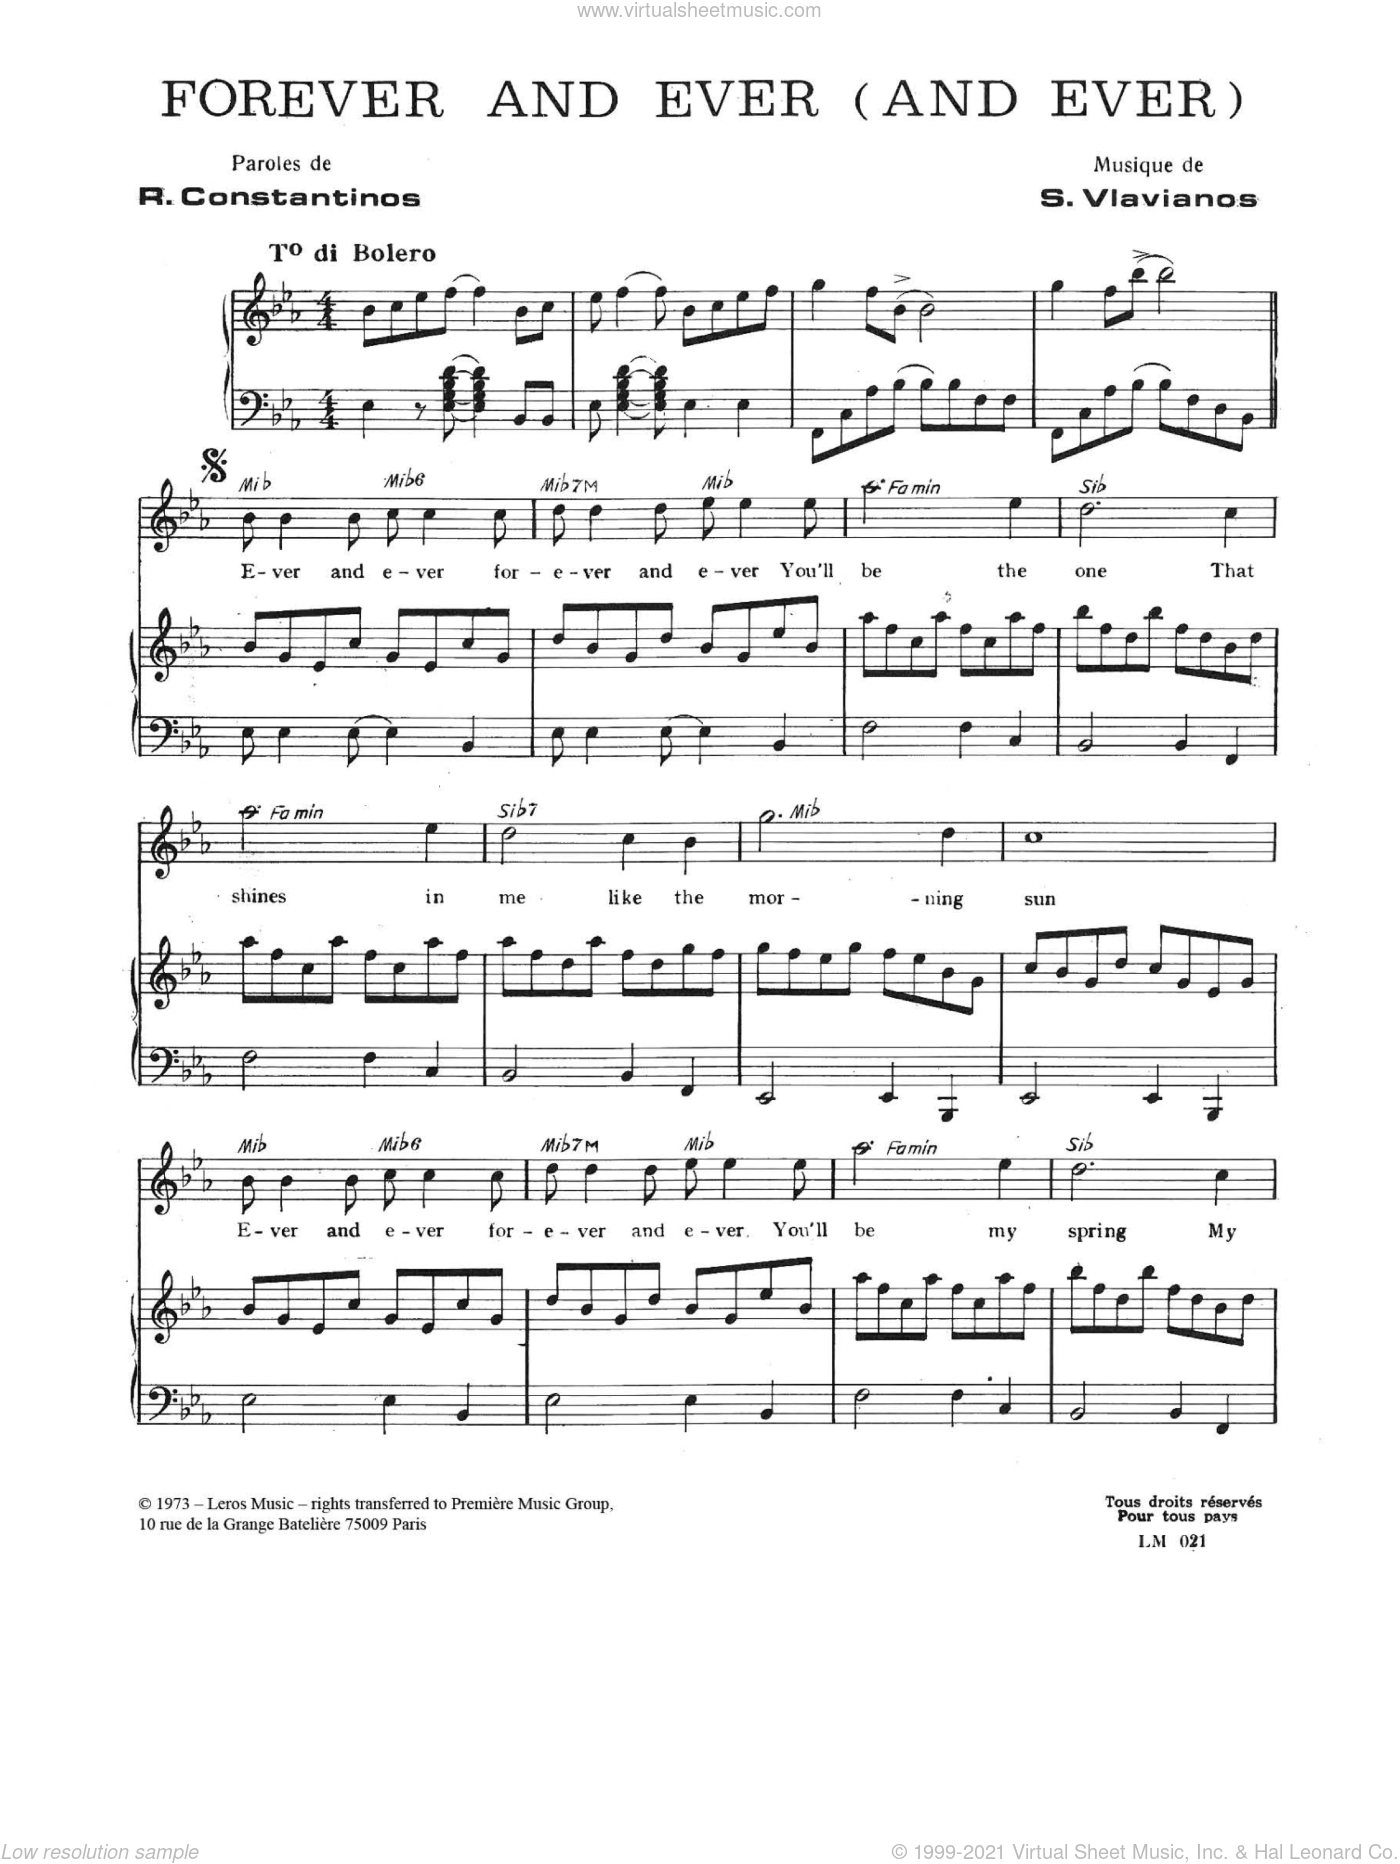 Forever And Ever (And Ever) sheet music for voice and piano by Stylianos Vlavianos and Robert Costandinos, intermediate skill level